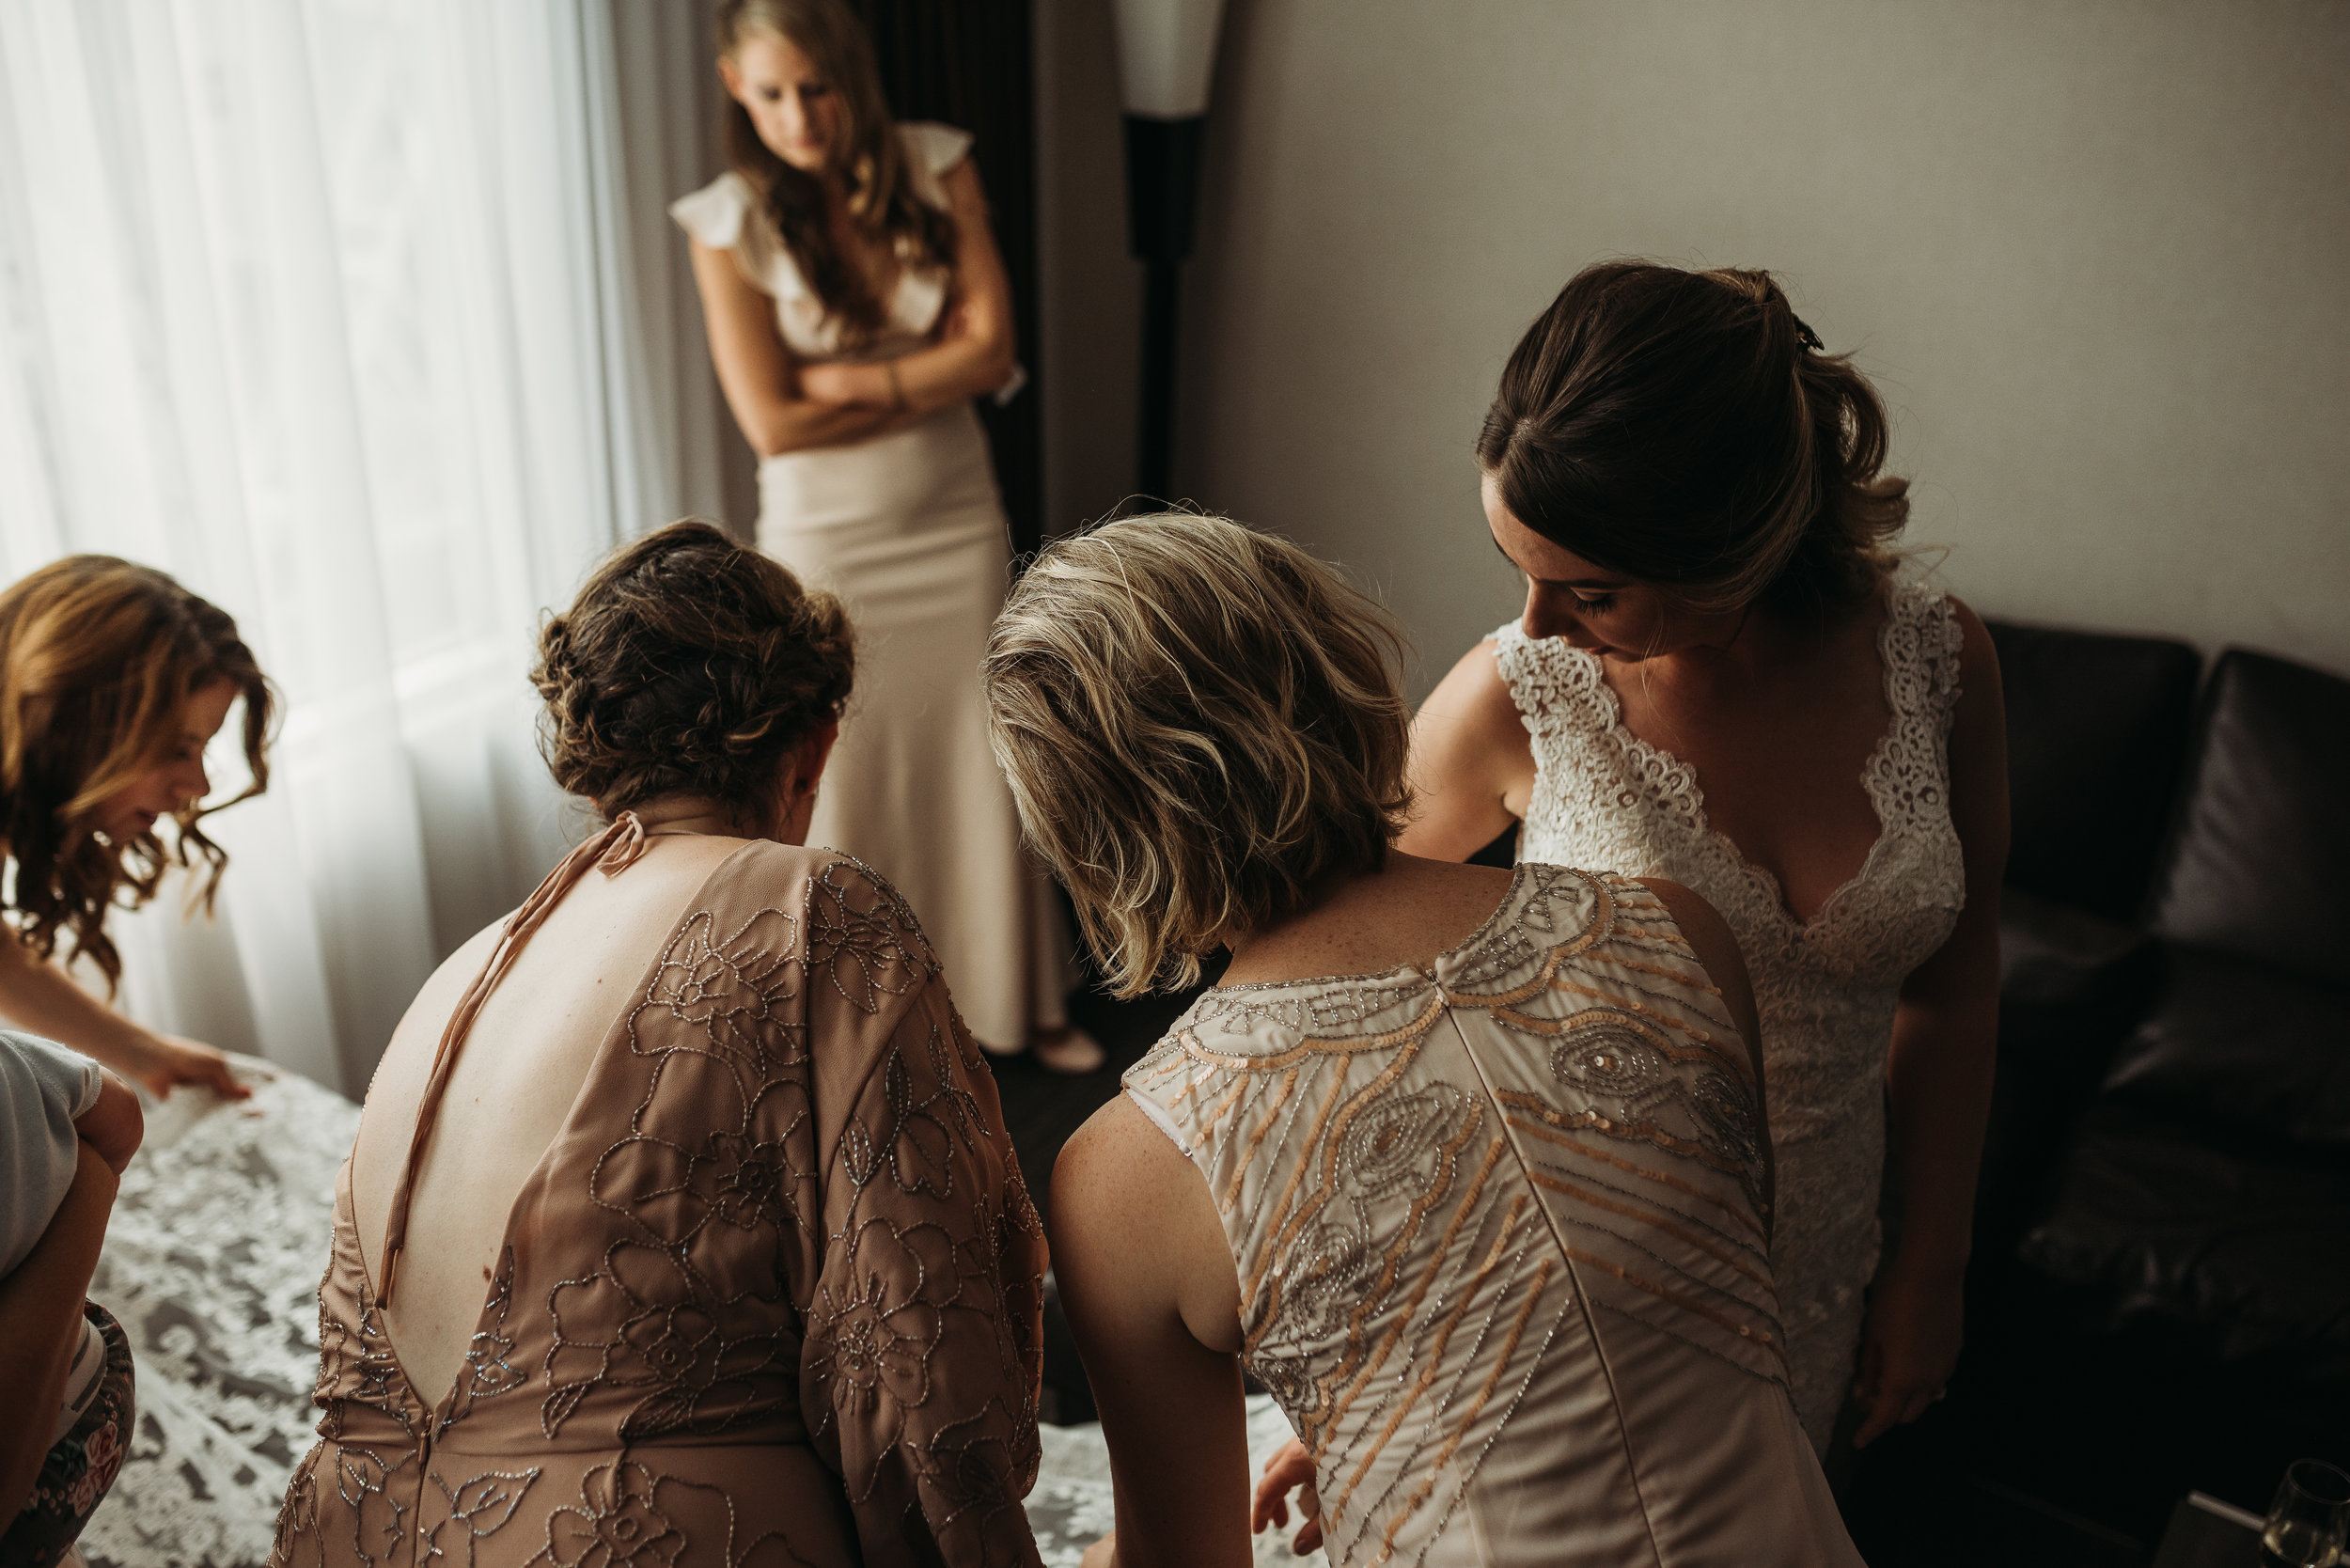 bride-getting-ready-photos-toronto-rustic-boho-airship37-wedding-by-willow-birch-photo-toronto-documentary-wedding-photographers.jpg